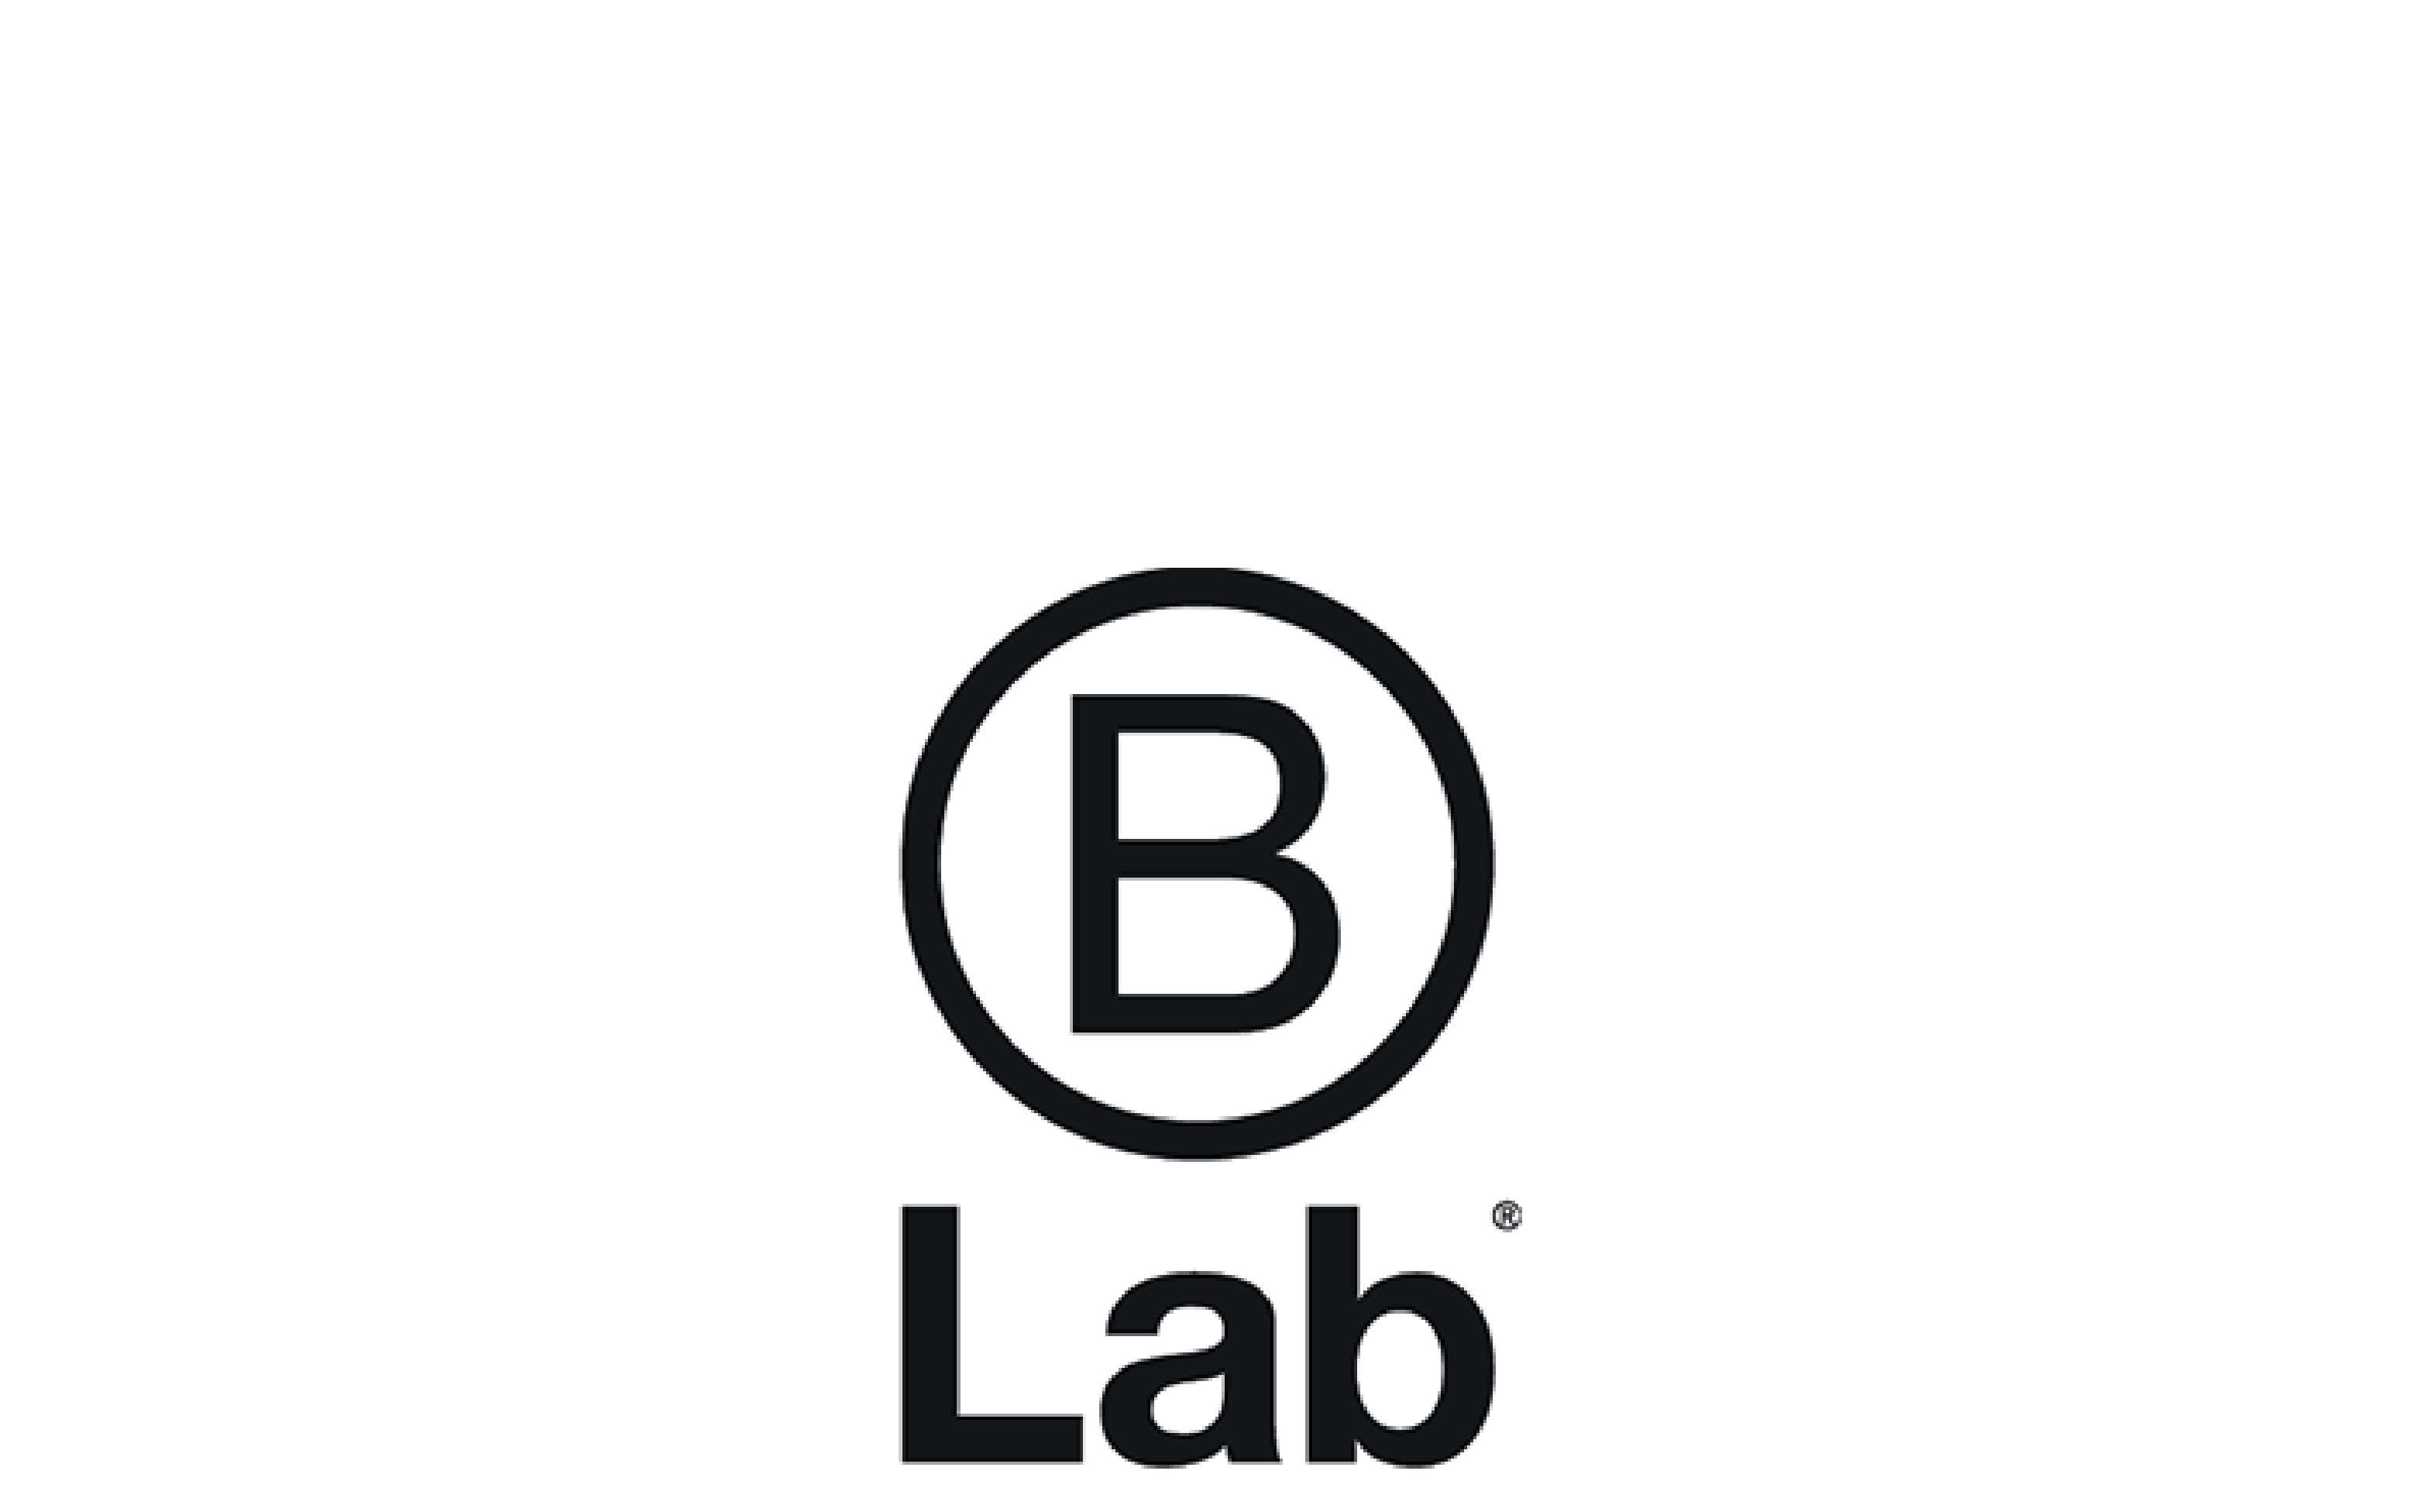 tactive consulting - b lab logo resize 1.4